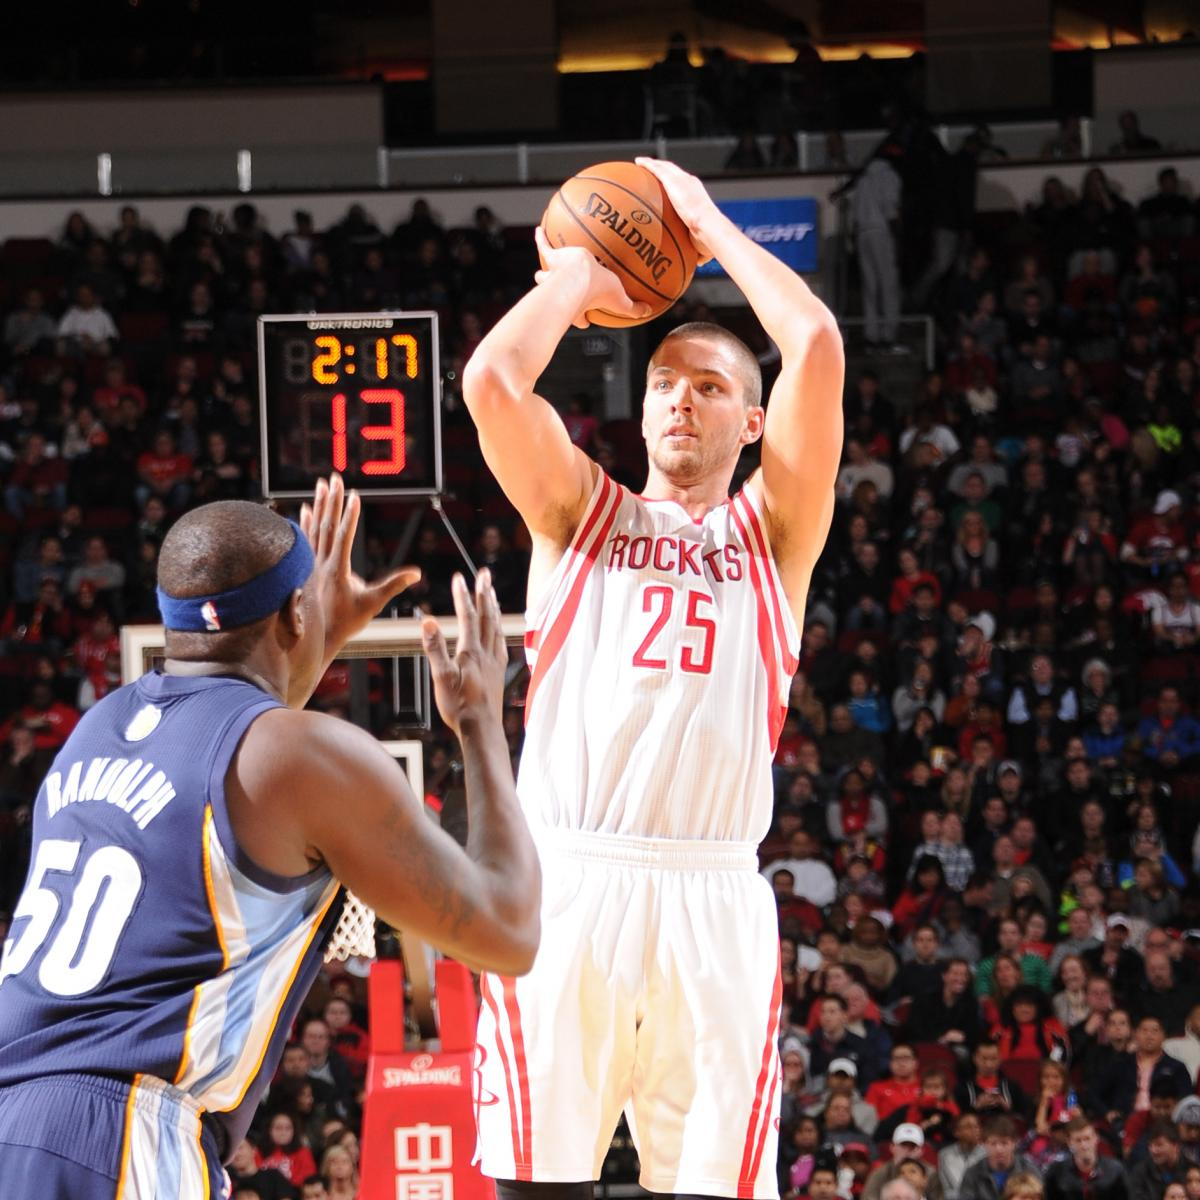 Houston Rockets Game Log: Chandler Parsons Hits 10 Threes In 1 Half, Sets NBA Record